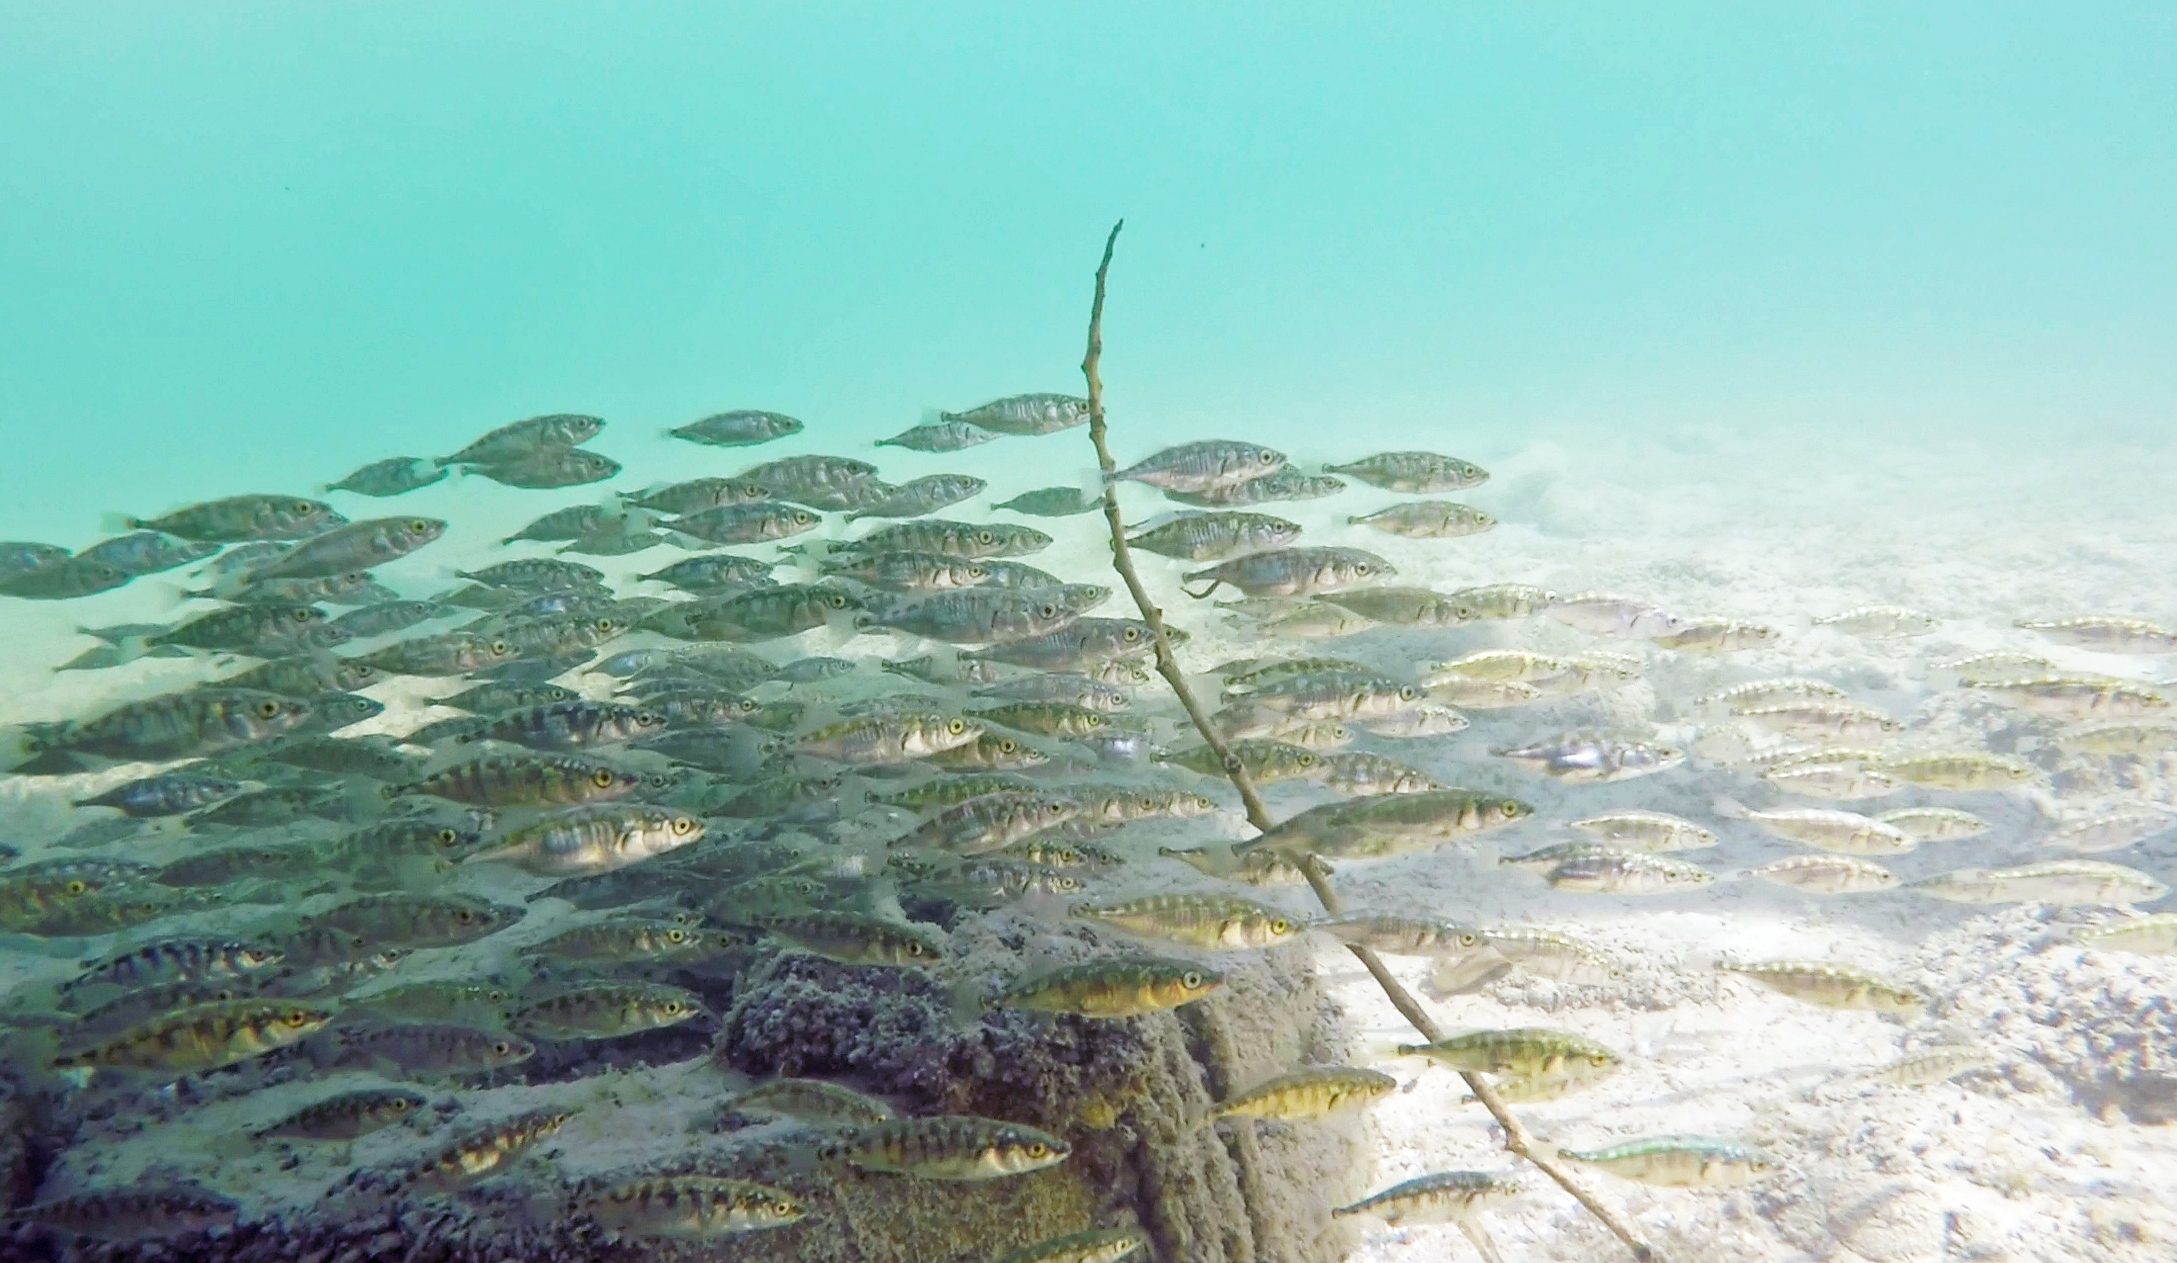 Highly coordinated school of three-spined sticklebacks swimming in the blue waters of the Bodensee near Konstanz, Southern Germany. Photo: Jolle W. Jolles